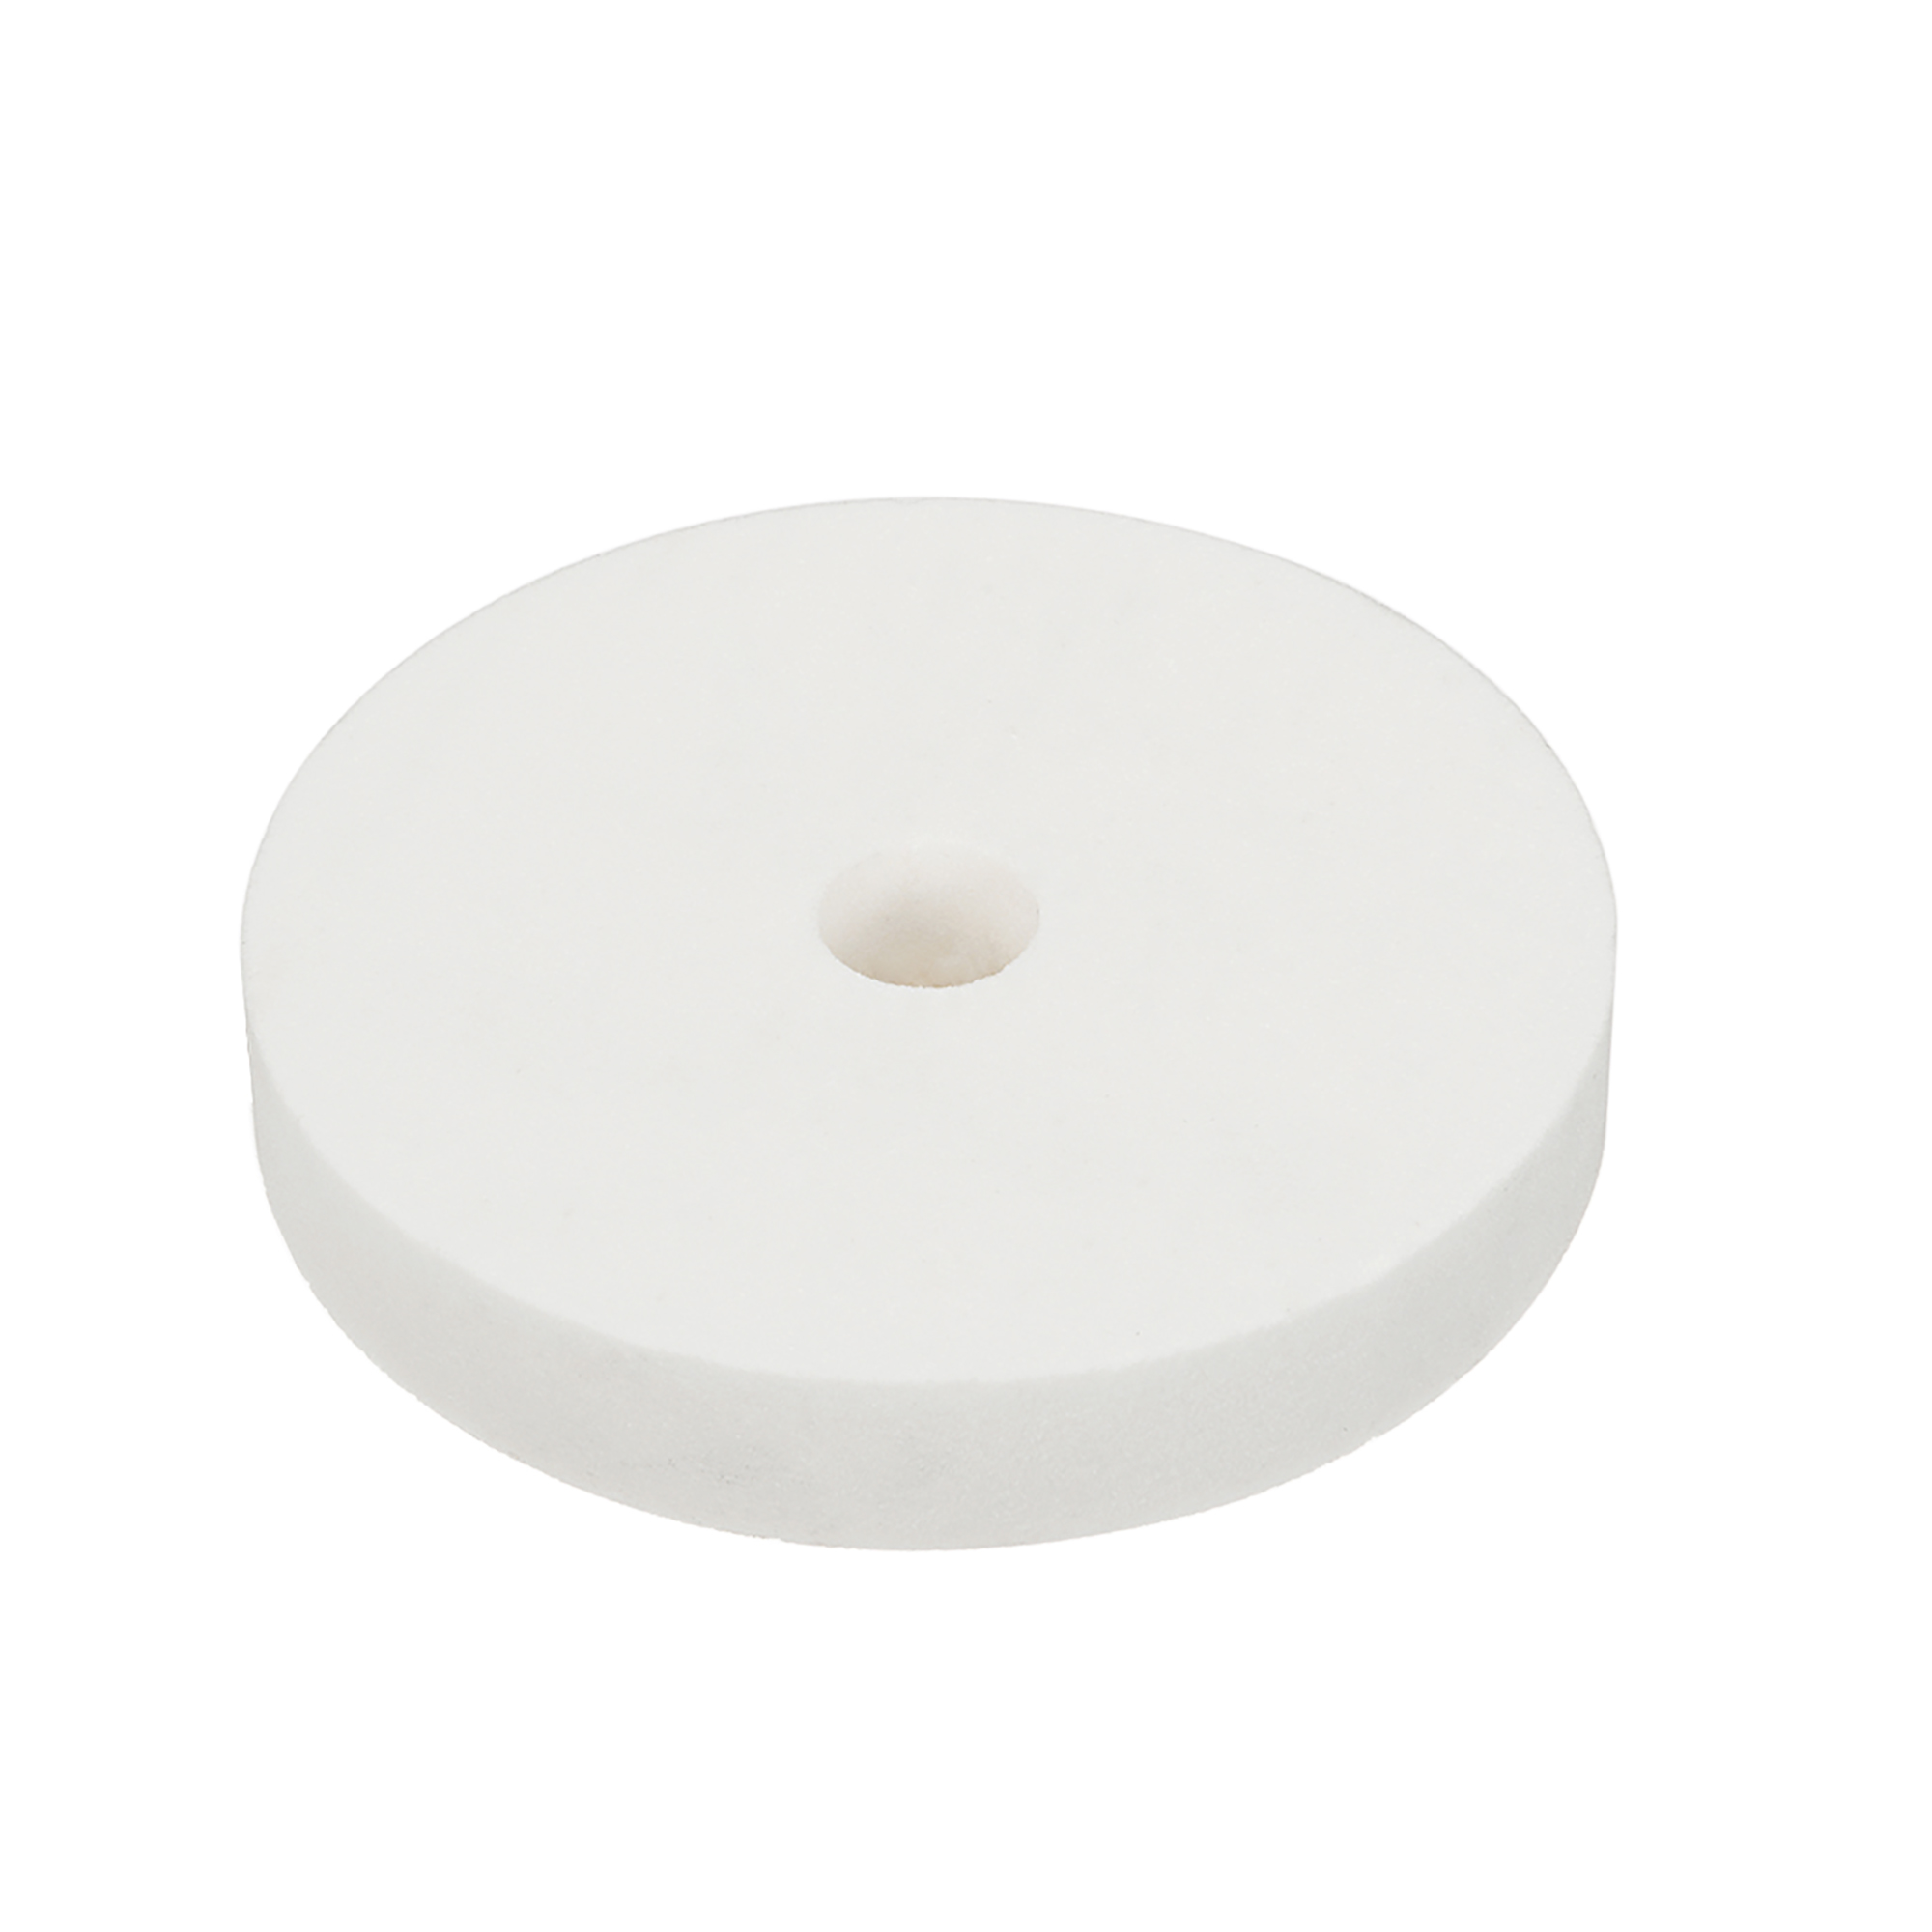 5-Inch Bench Grinding Wheels White Aluminum Oxide WA 60 Grits Surface Grinding Ceramic Tools - image 3 de 3